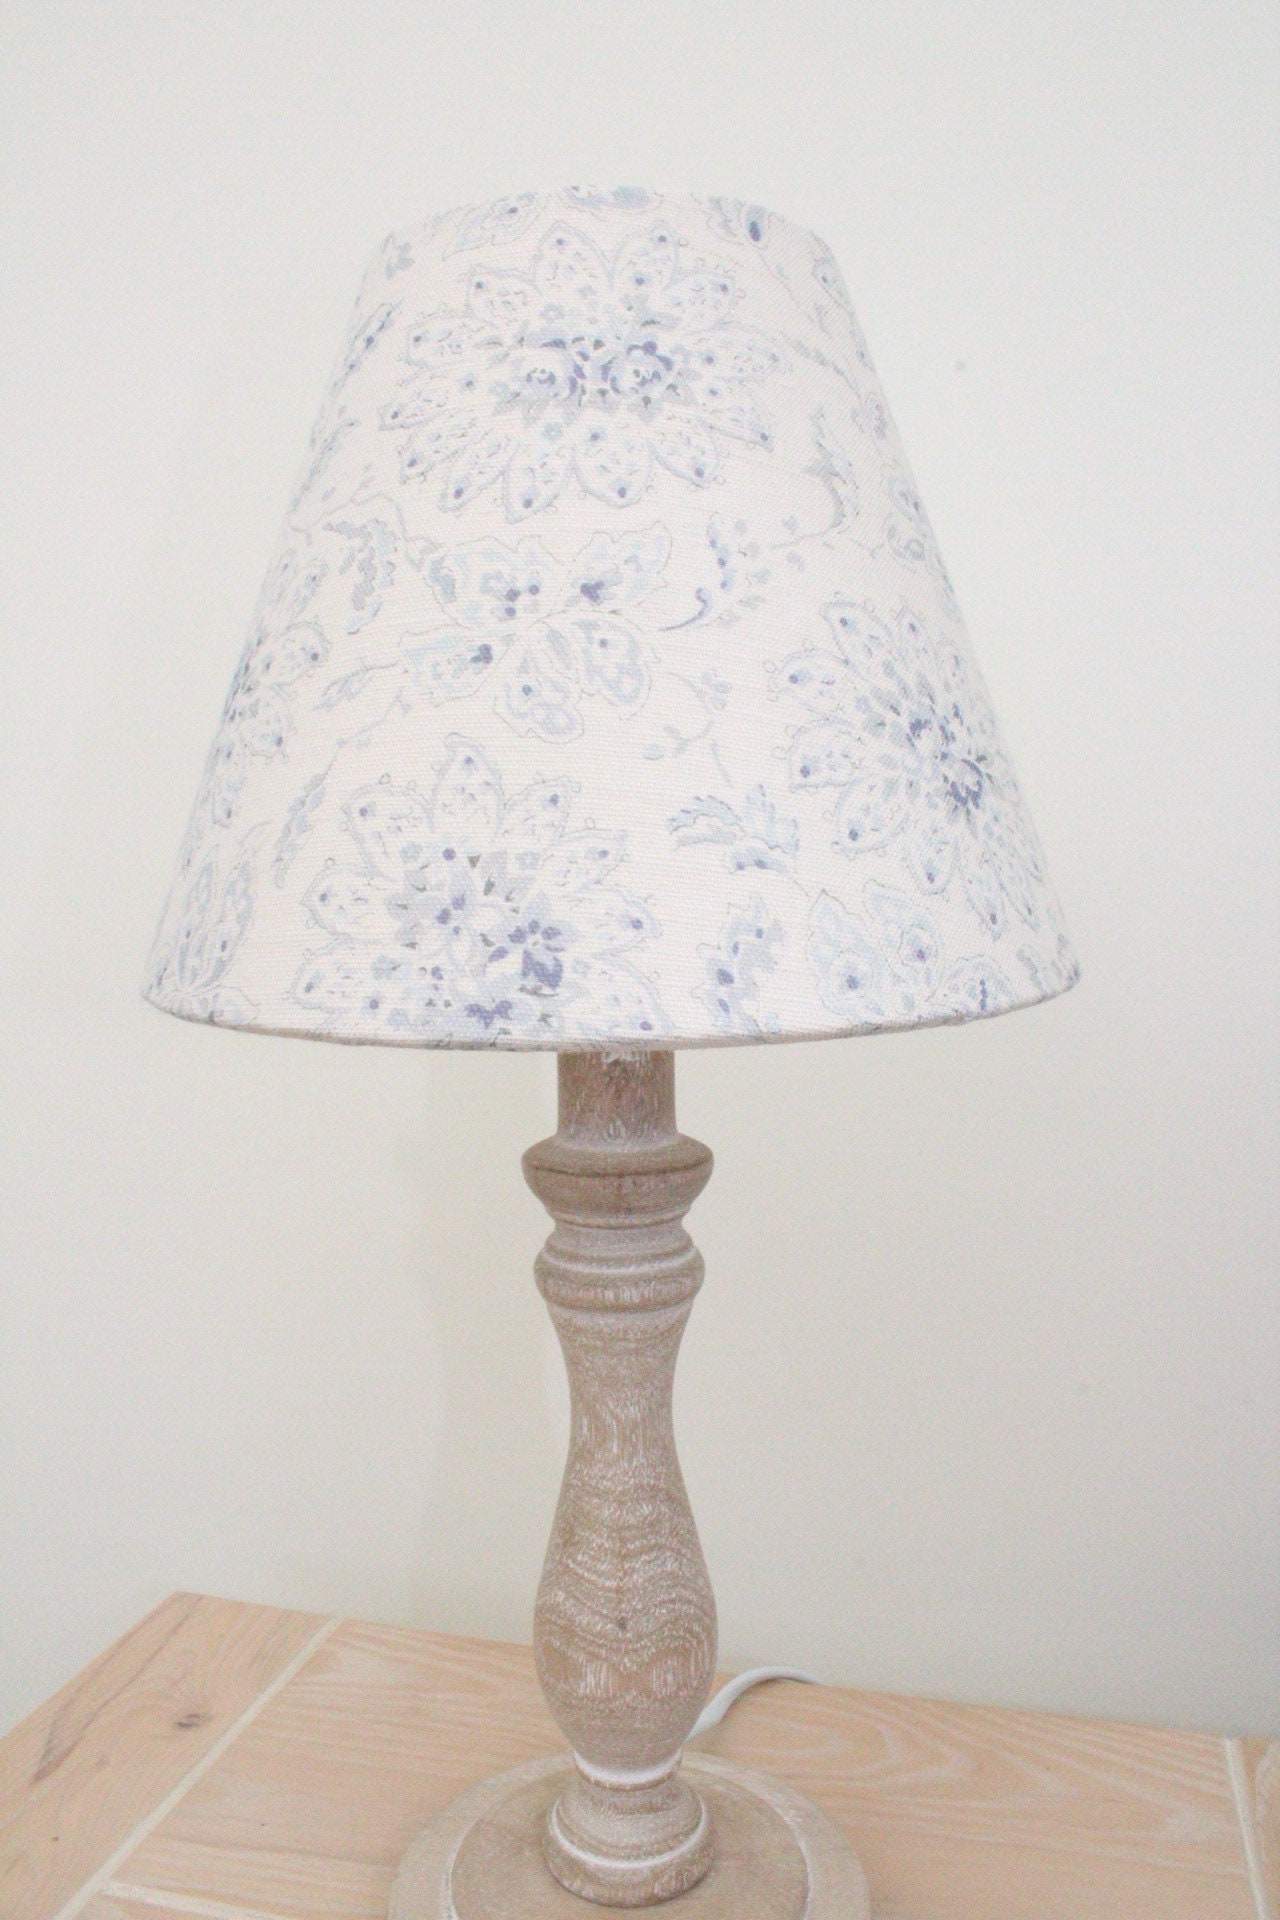 Lampshade Home Decor Table Lamp Floor Lamp Lighting Empire Lamp